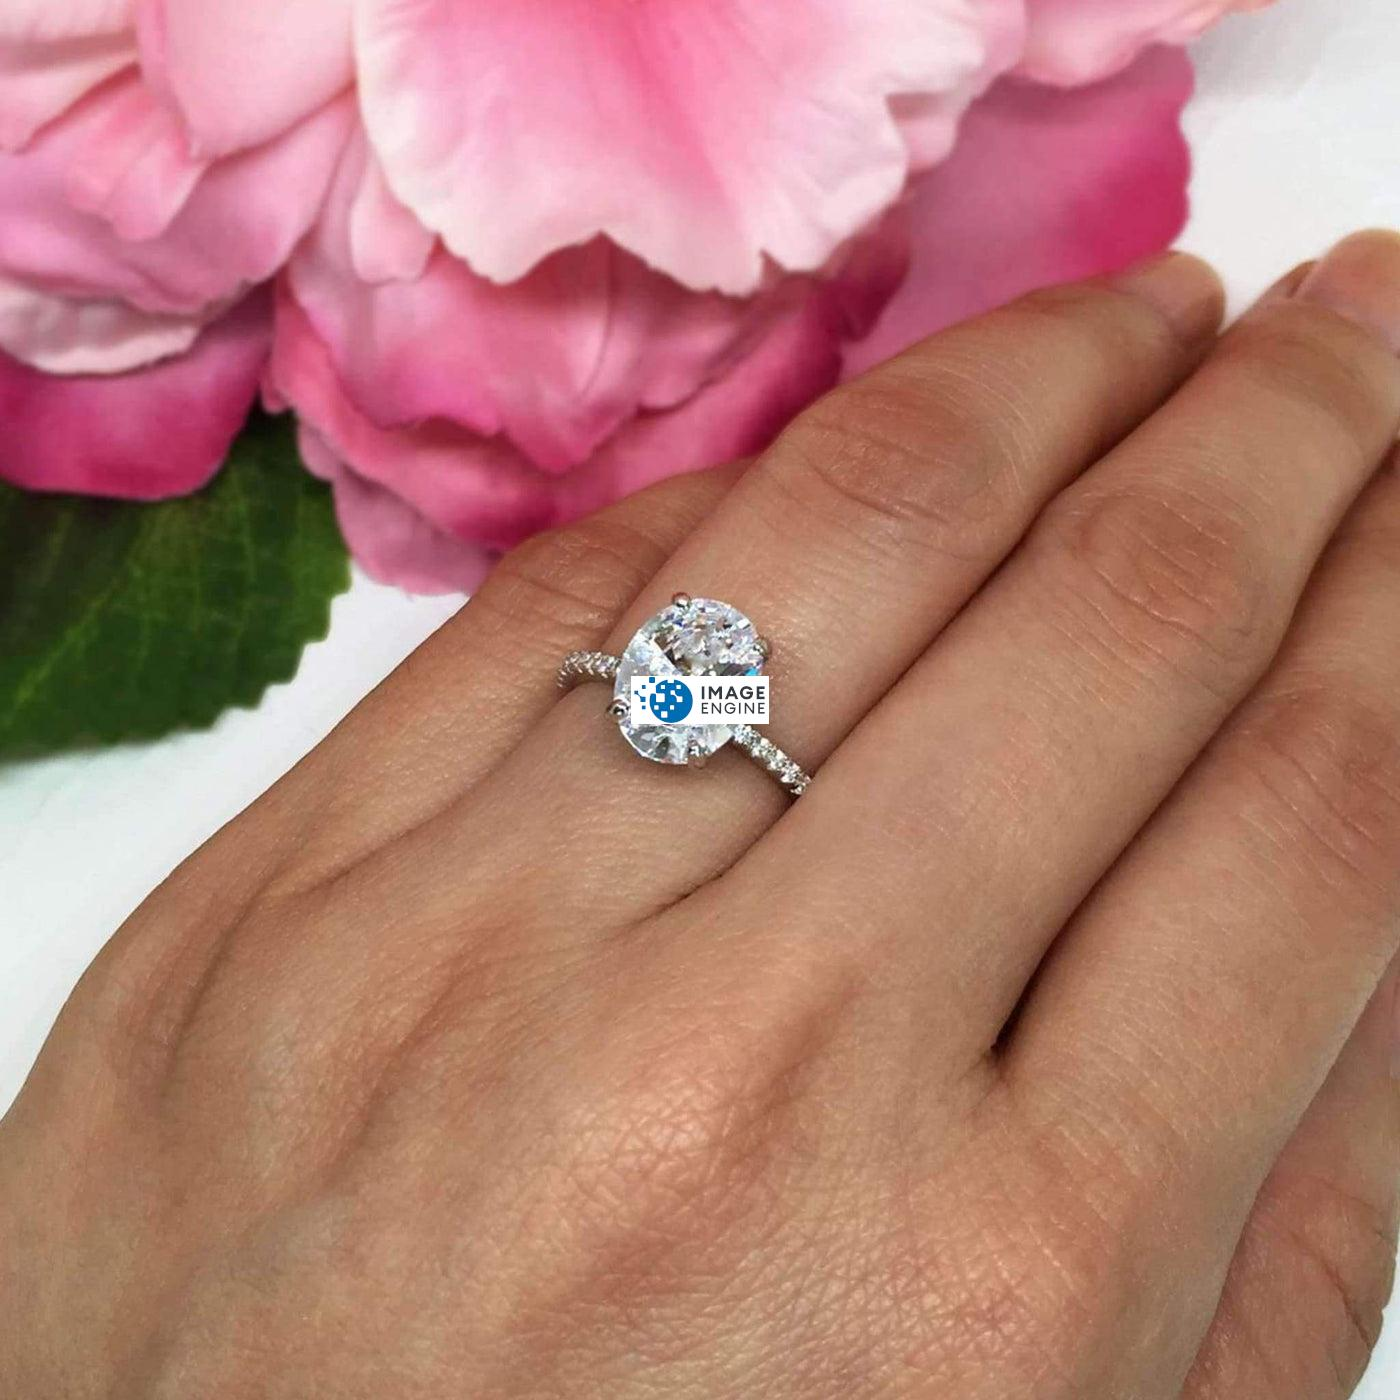 Cara Zirconia Ring - Wearing on Ring Finger View - 925 Sterling Silver